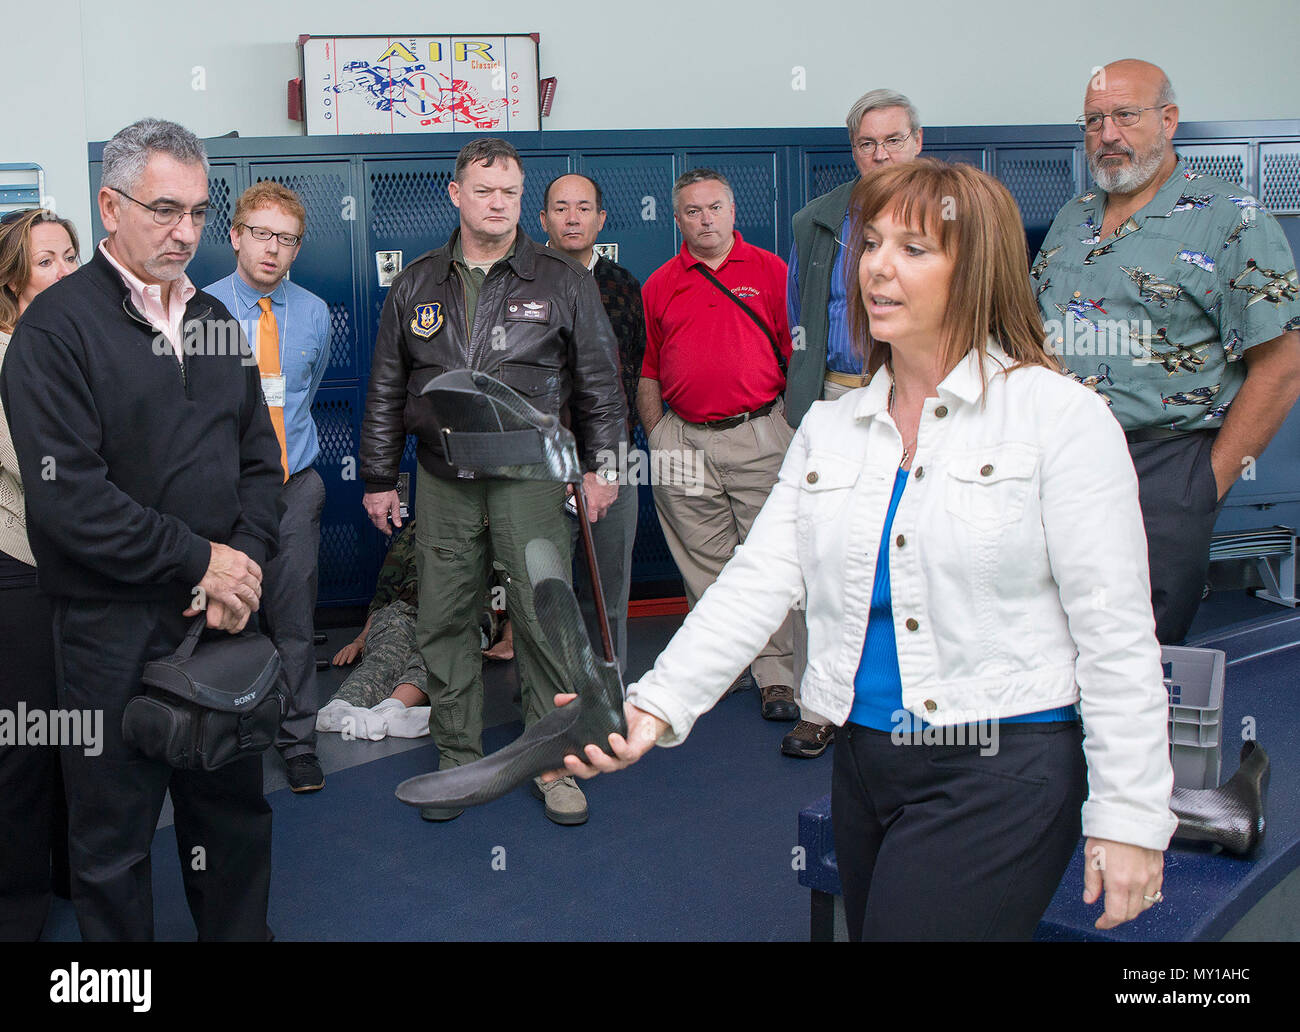 Lori Leal, Center for the Intrepid secretary, explains the capabilities of the Intrepid Dynamic Exoskeletal Orthosis to civic leaders from Joint Base McGuire-Dix-Lakehurst Nov. 30, 2016 at Joint Base San Antonio-Ft. Sam Houston, Texas. The civic leaders also toured a C-5M Super Galaxy aircraft, the Medical Training and Education Campus at Joint Base San Antonio-Ft. Sam Houston. (U.S. Air Force photo by Benjamin Faske) - Stock Image